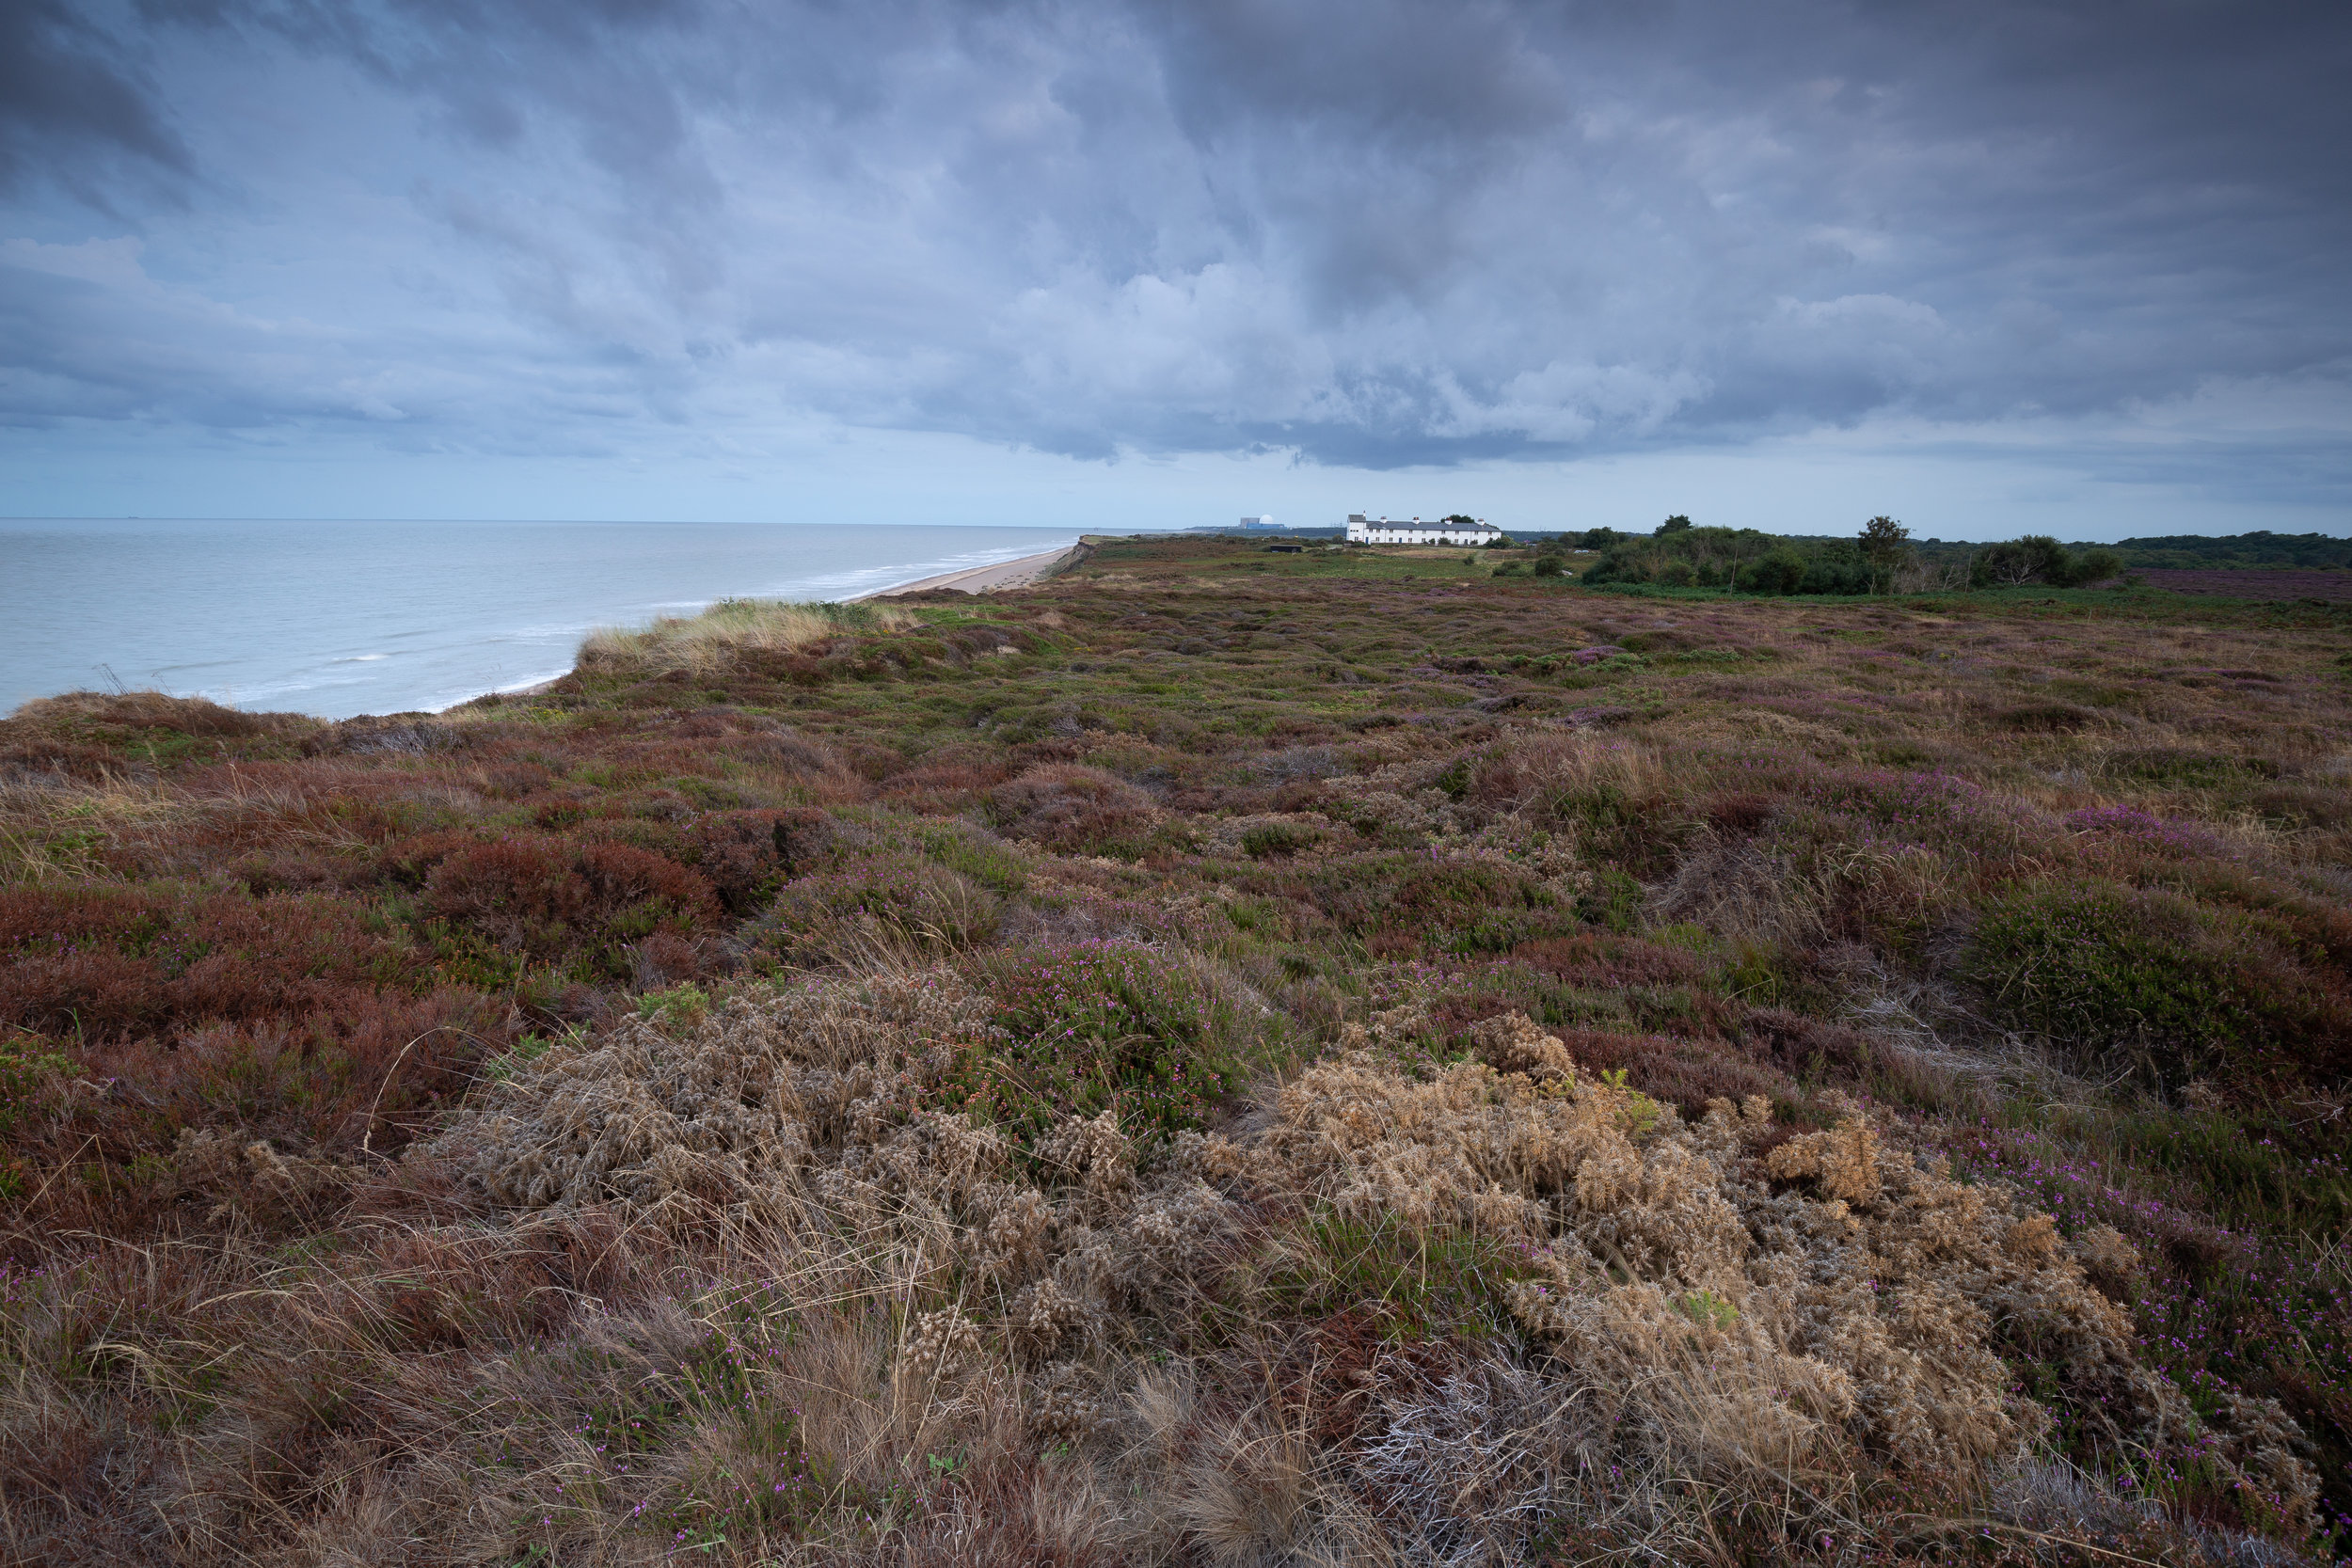 Before heather strikes, Dunwich Heath, Suffolk.